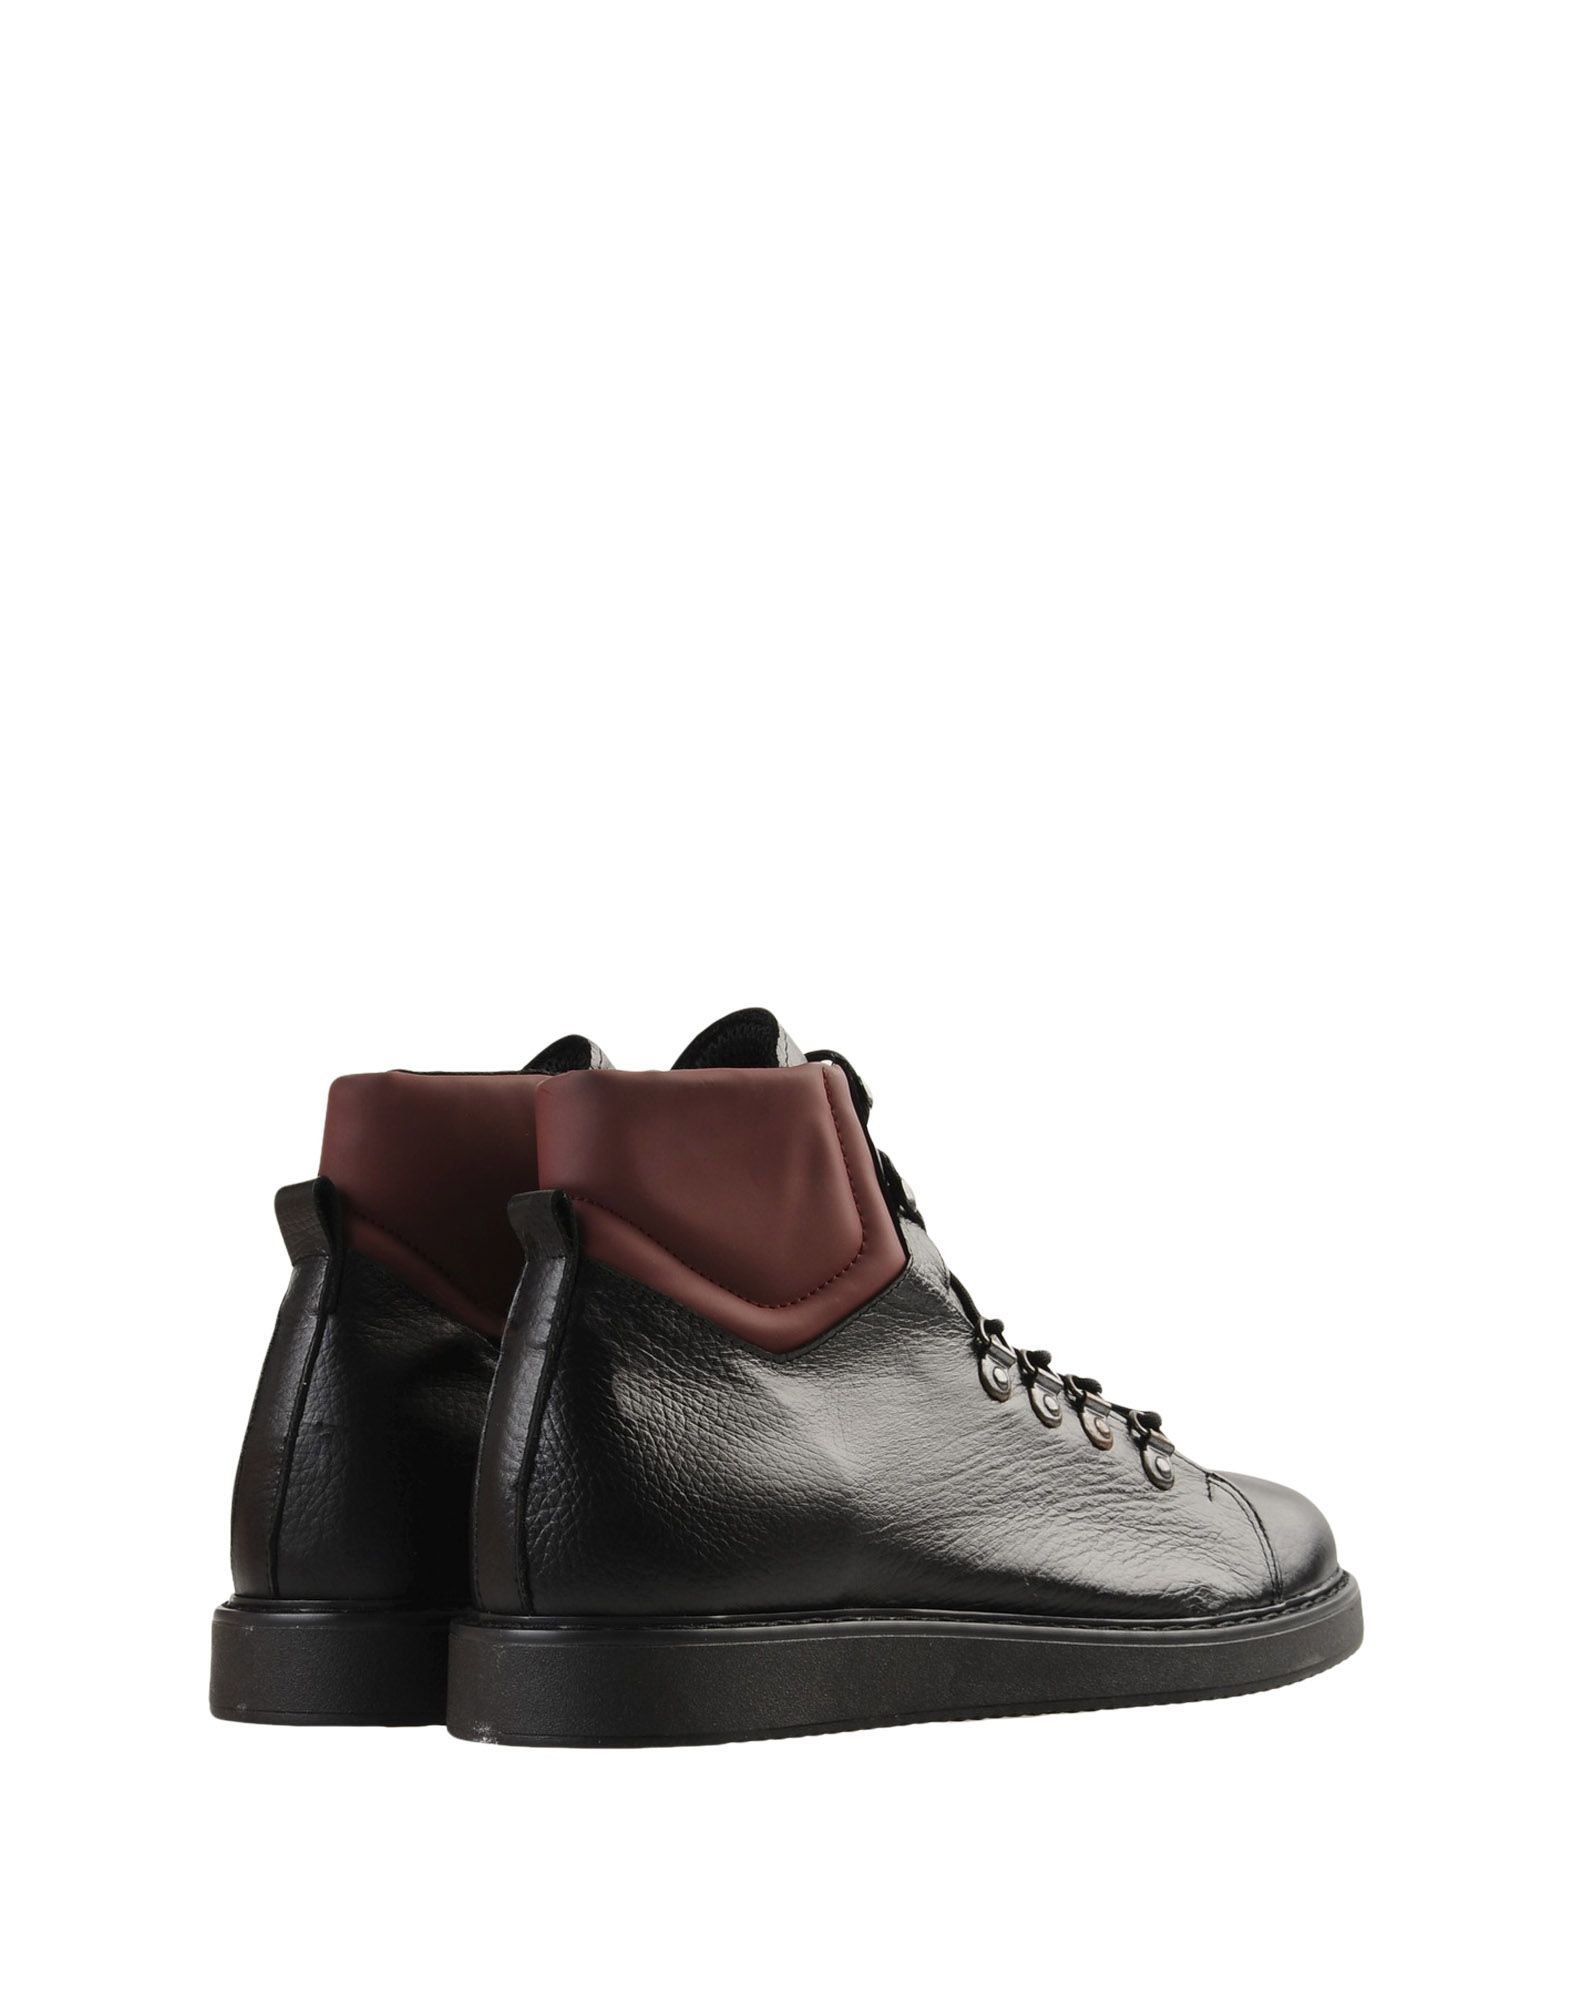 Hecon Sneakers - - - Men Hecon Sneakers online on  Canada - 11551126GV 880a06